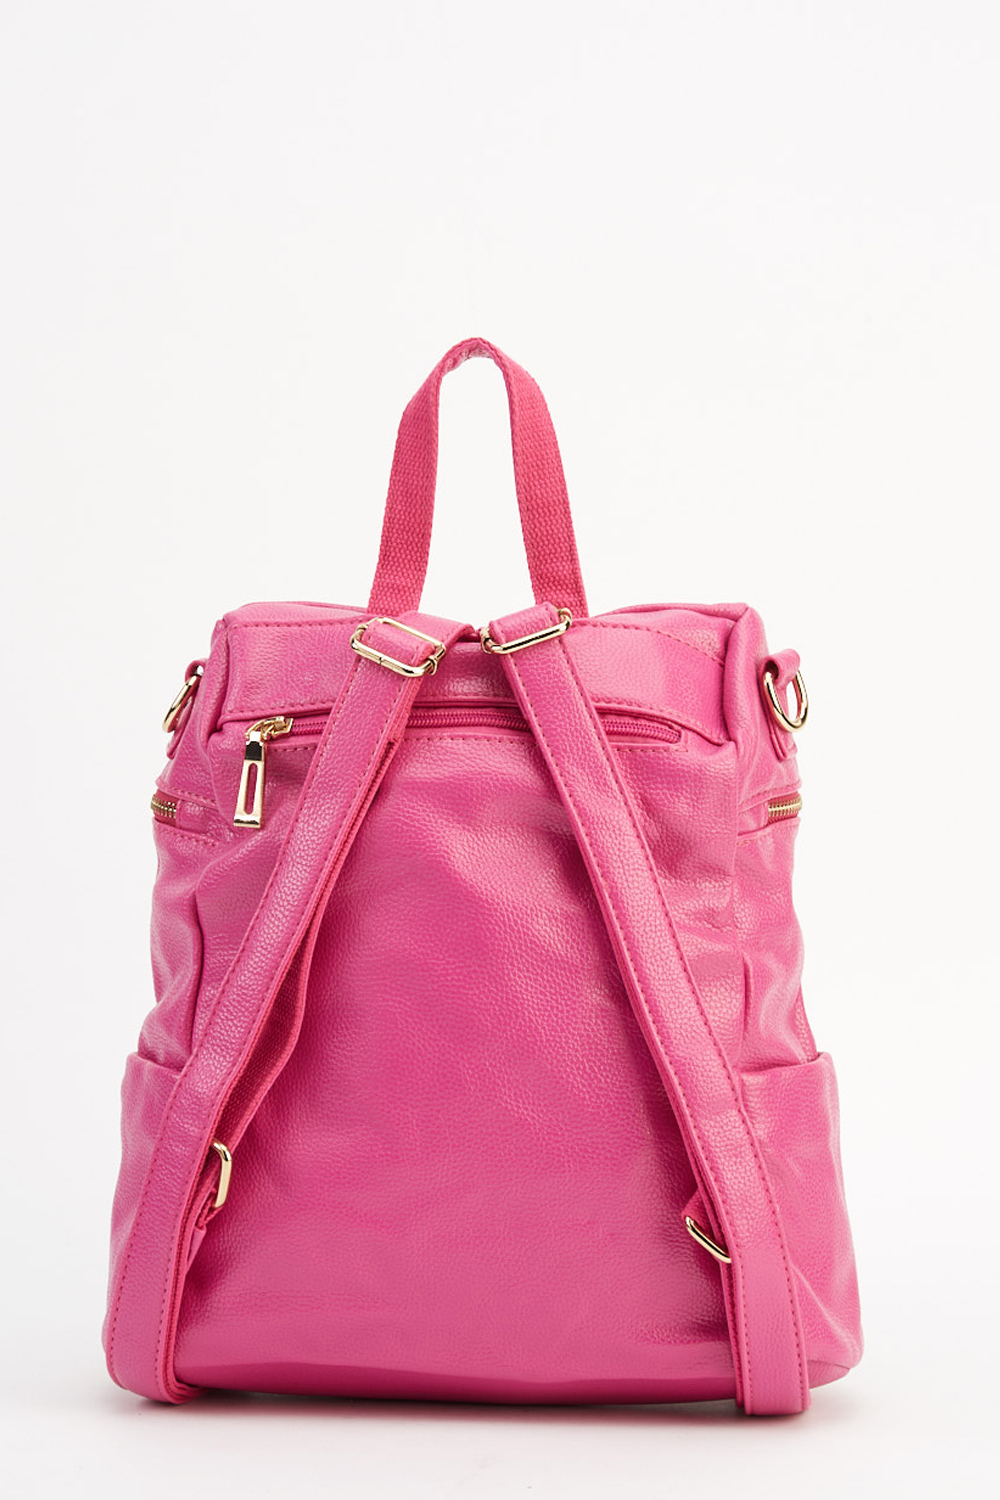 bbbdd8f335 Multi Zip Pocket Faux Leather Backpack. Click on the image to zoom